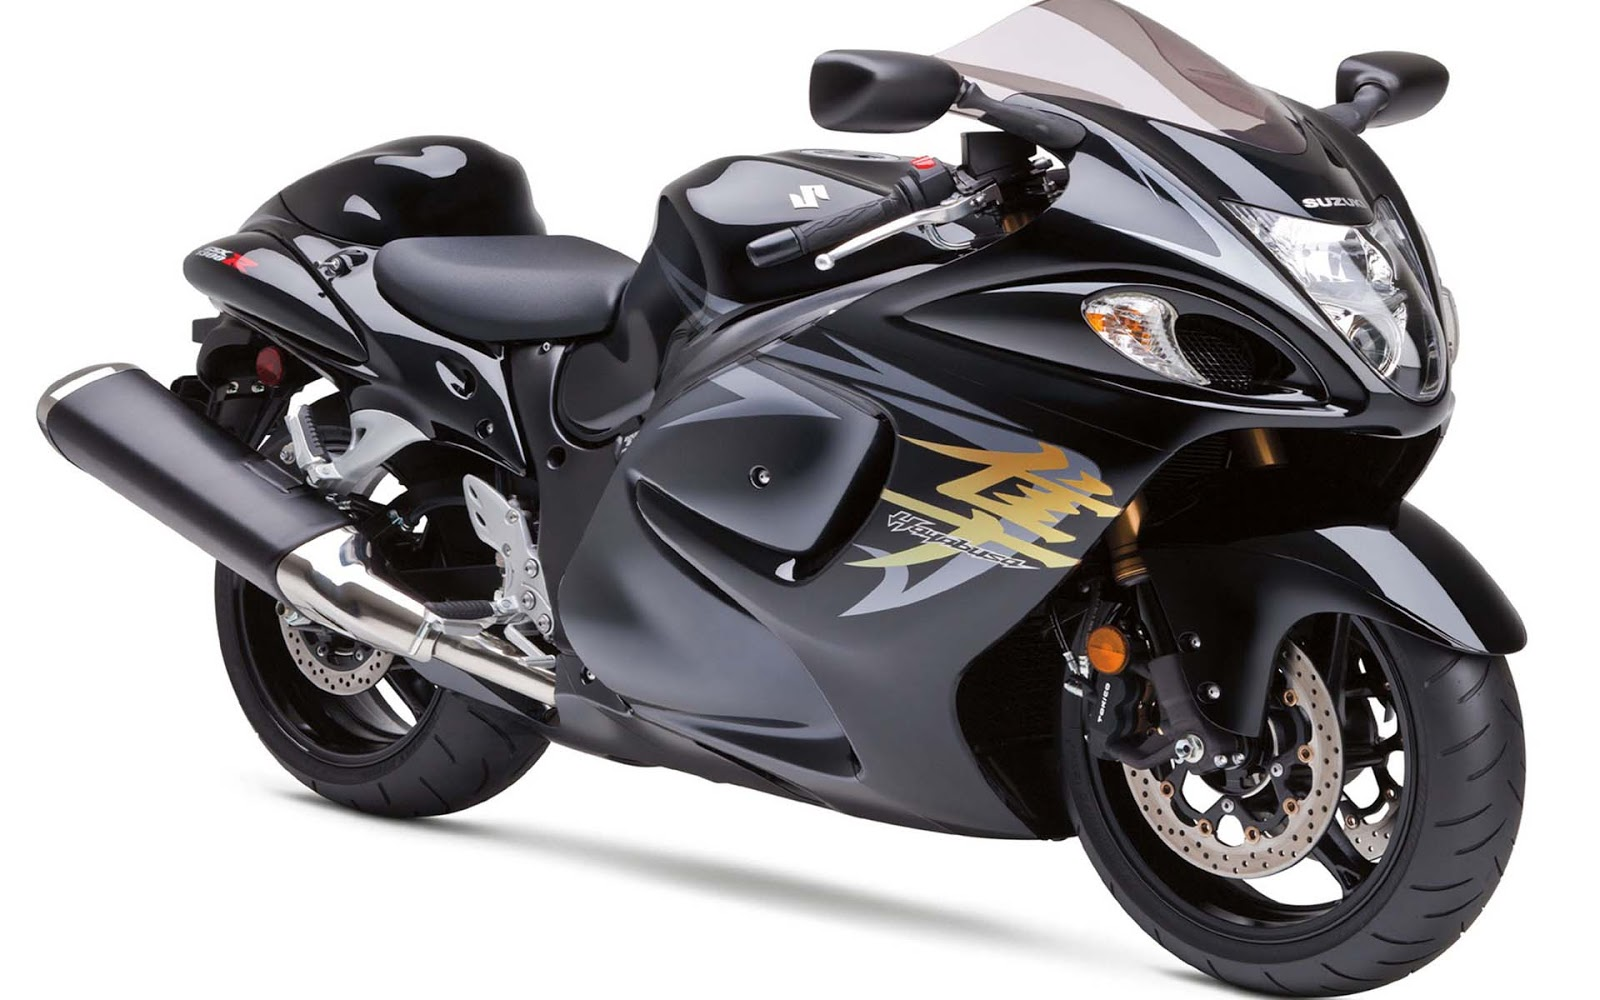 suzuki hayabusa bikes brand new model 2014 bikini sexy photography. Black Bedroom Furniture Sets. Home Design Ideas